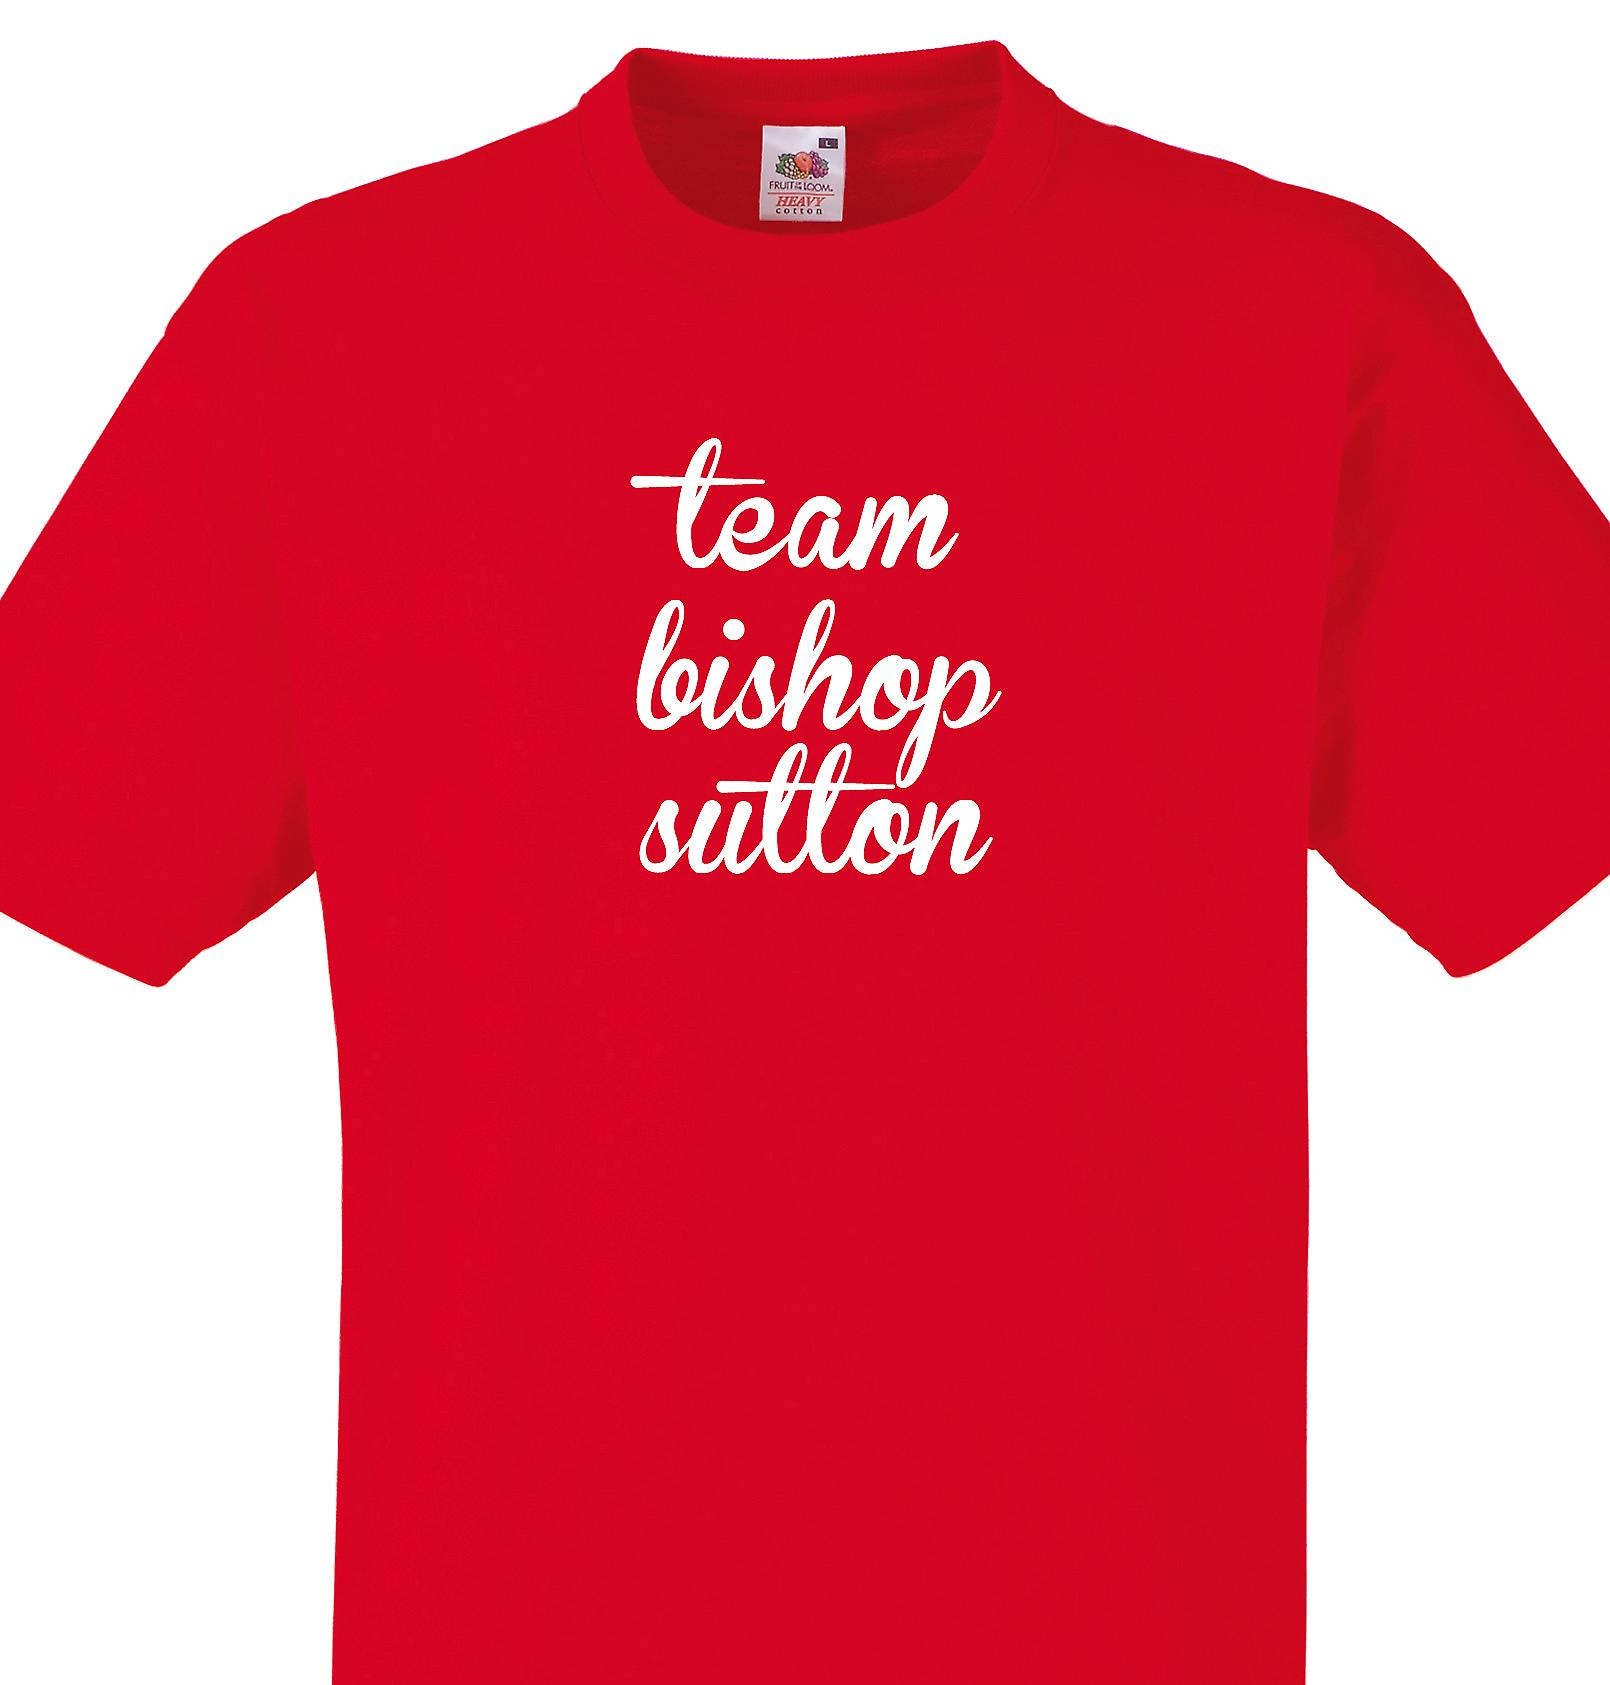 Team Bishop sutton Red T shirt